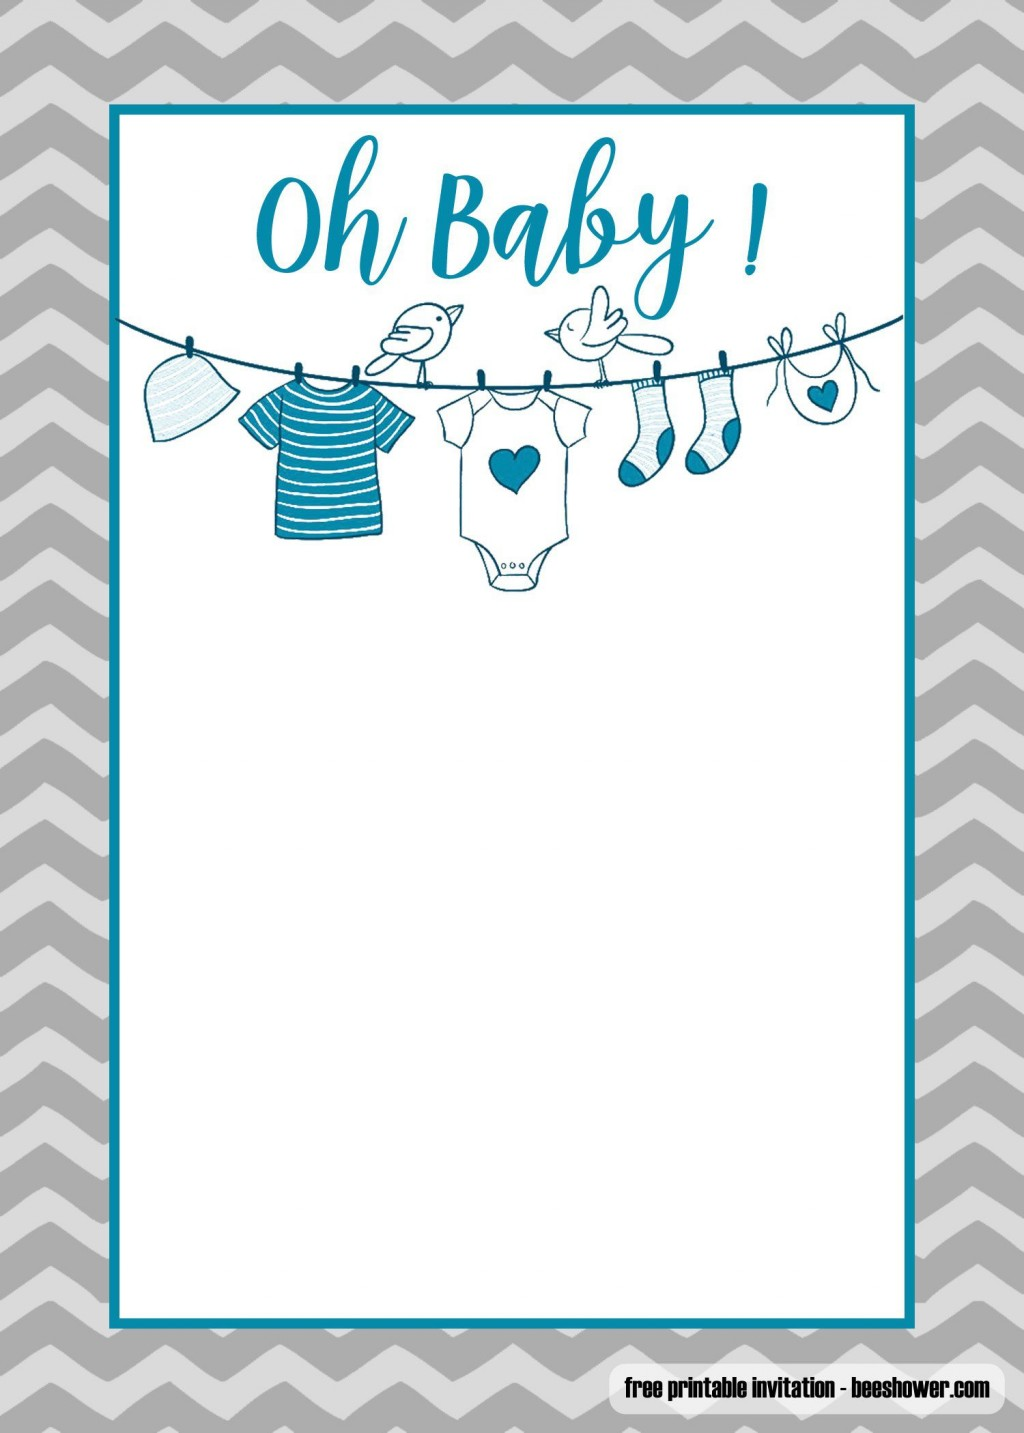 008 Striking Baby Shower Invite Template Word Photo  Work Invitation Wording Sample Format In M Free MicrosoftLarge